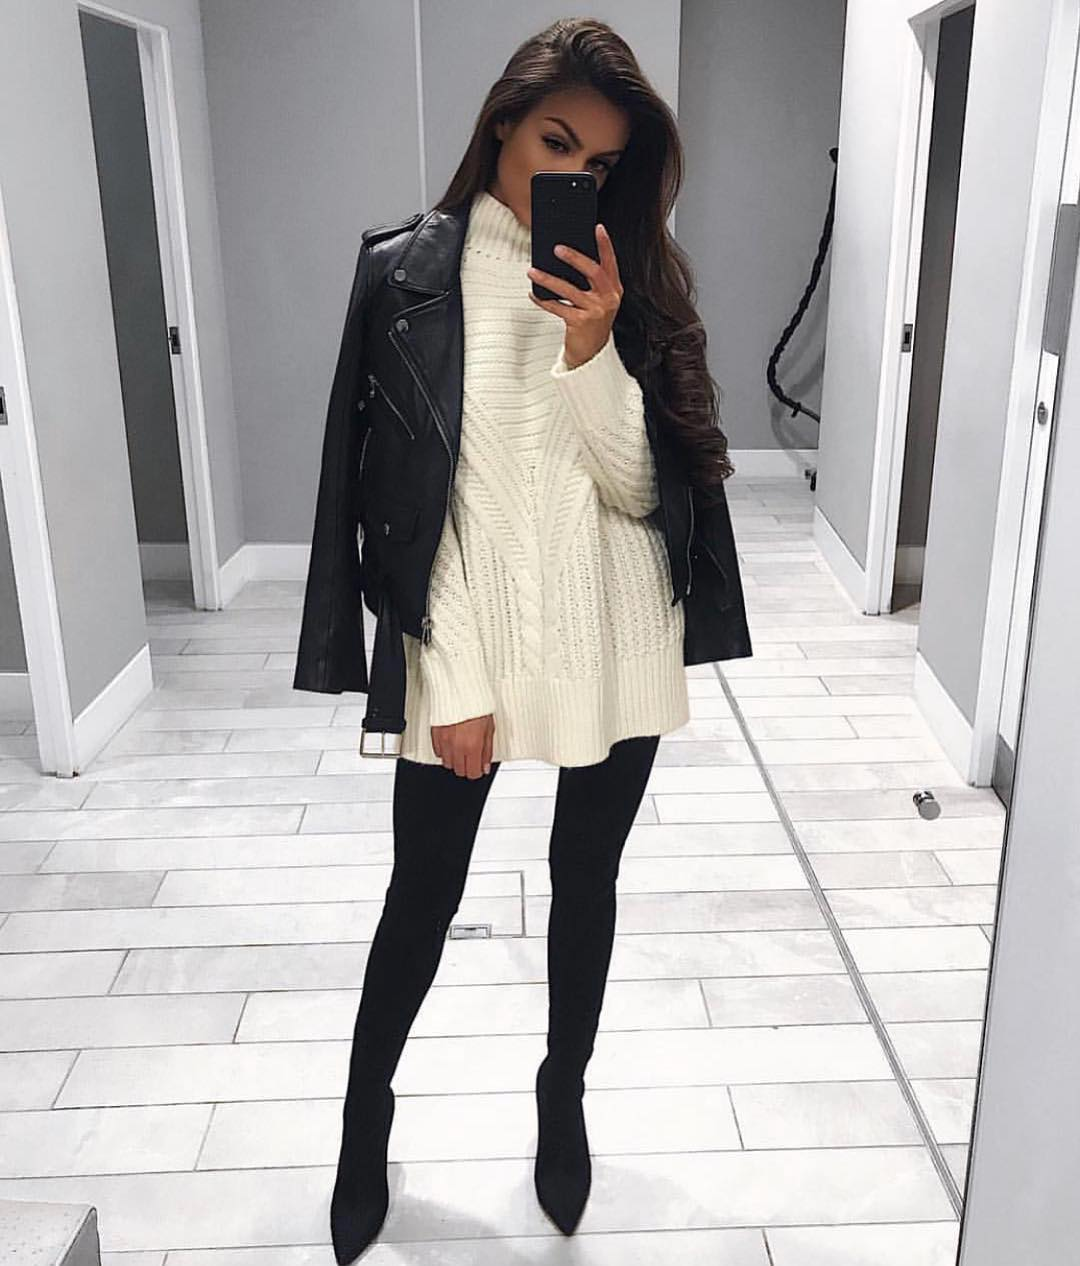 White Knitted Sweater Dress And Black Leather Jacket For Winter 2021